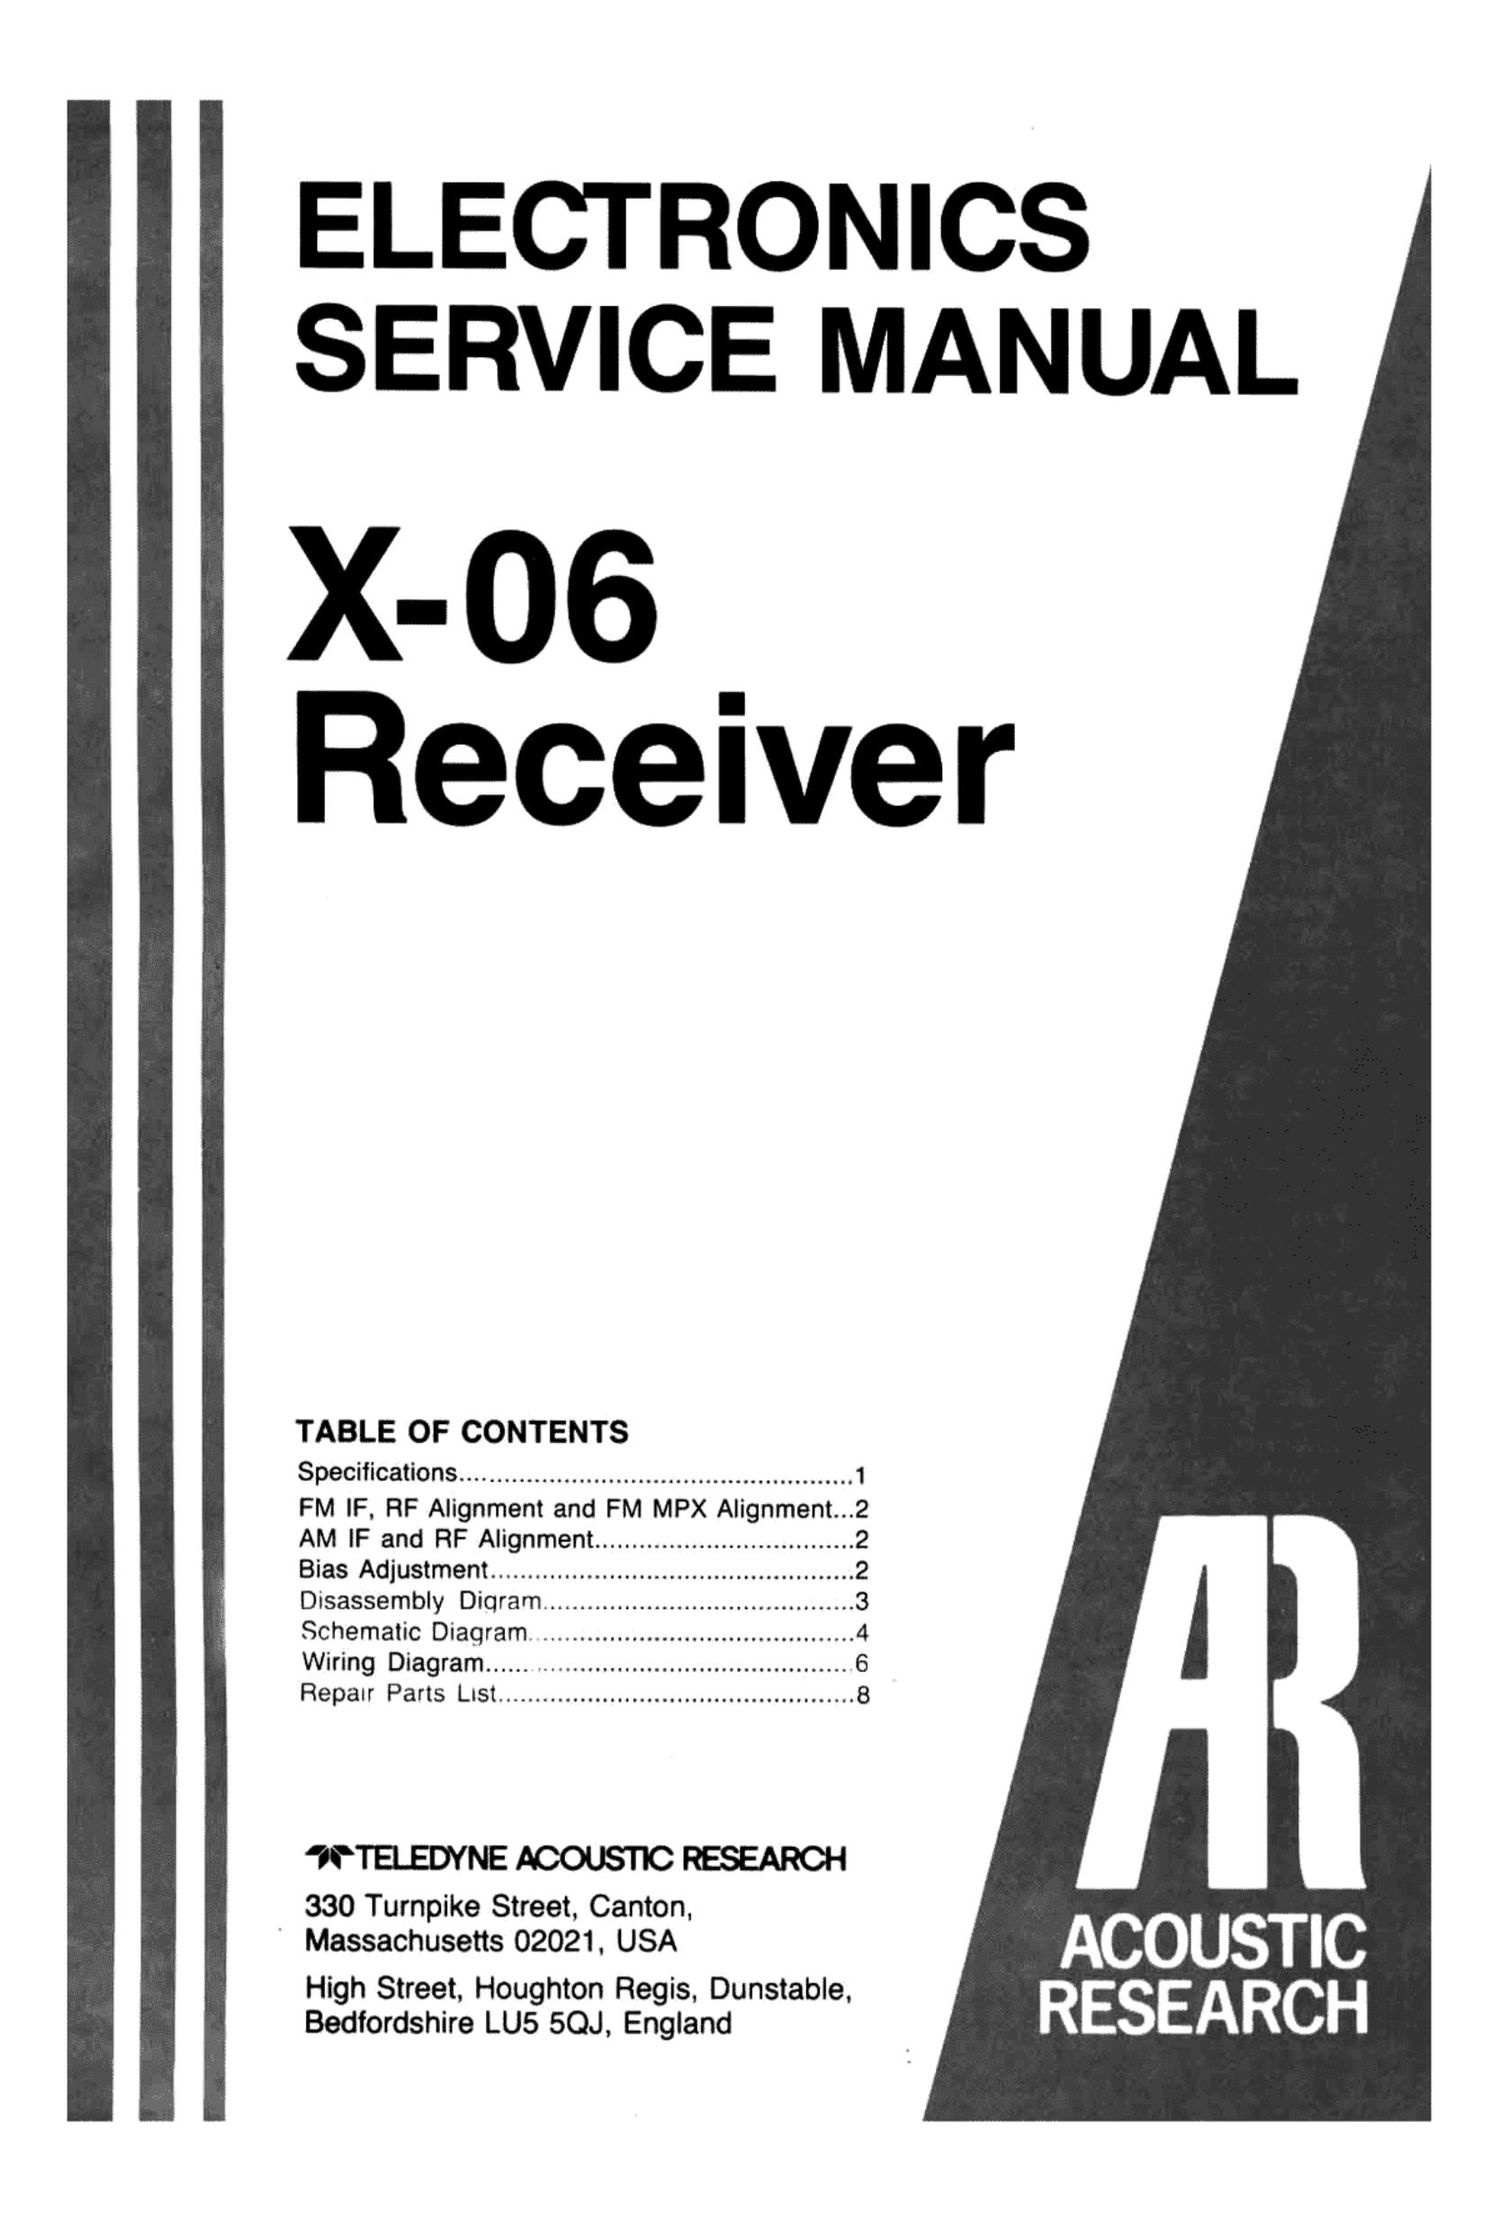 acoustic research X 06 Service Manual